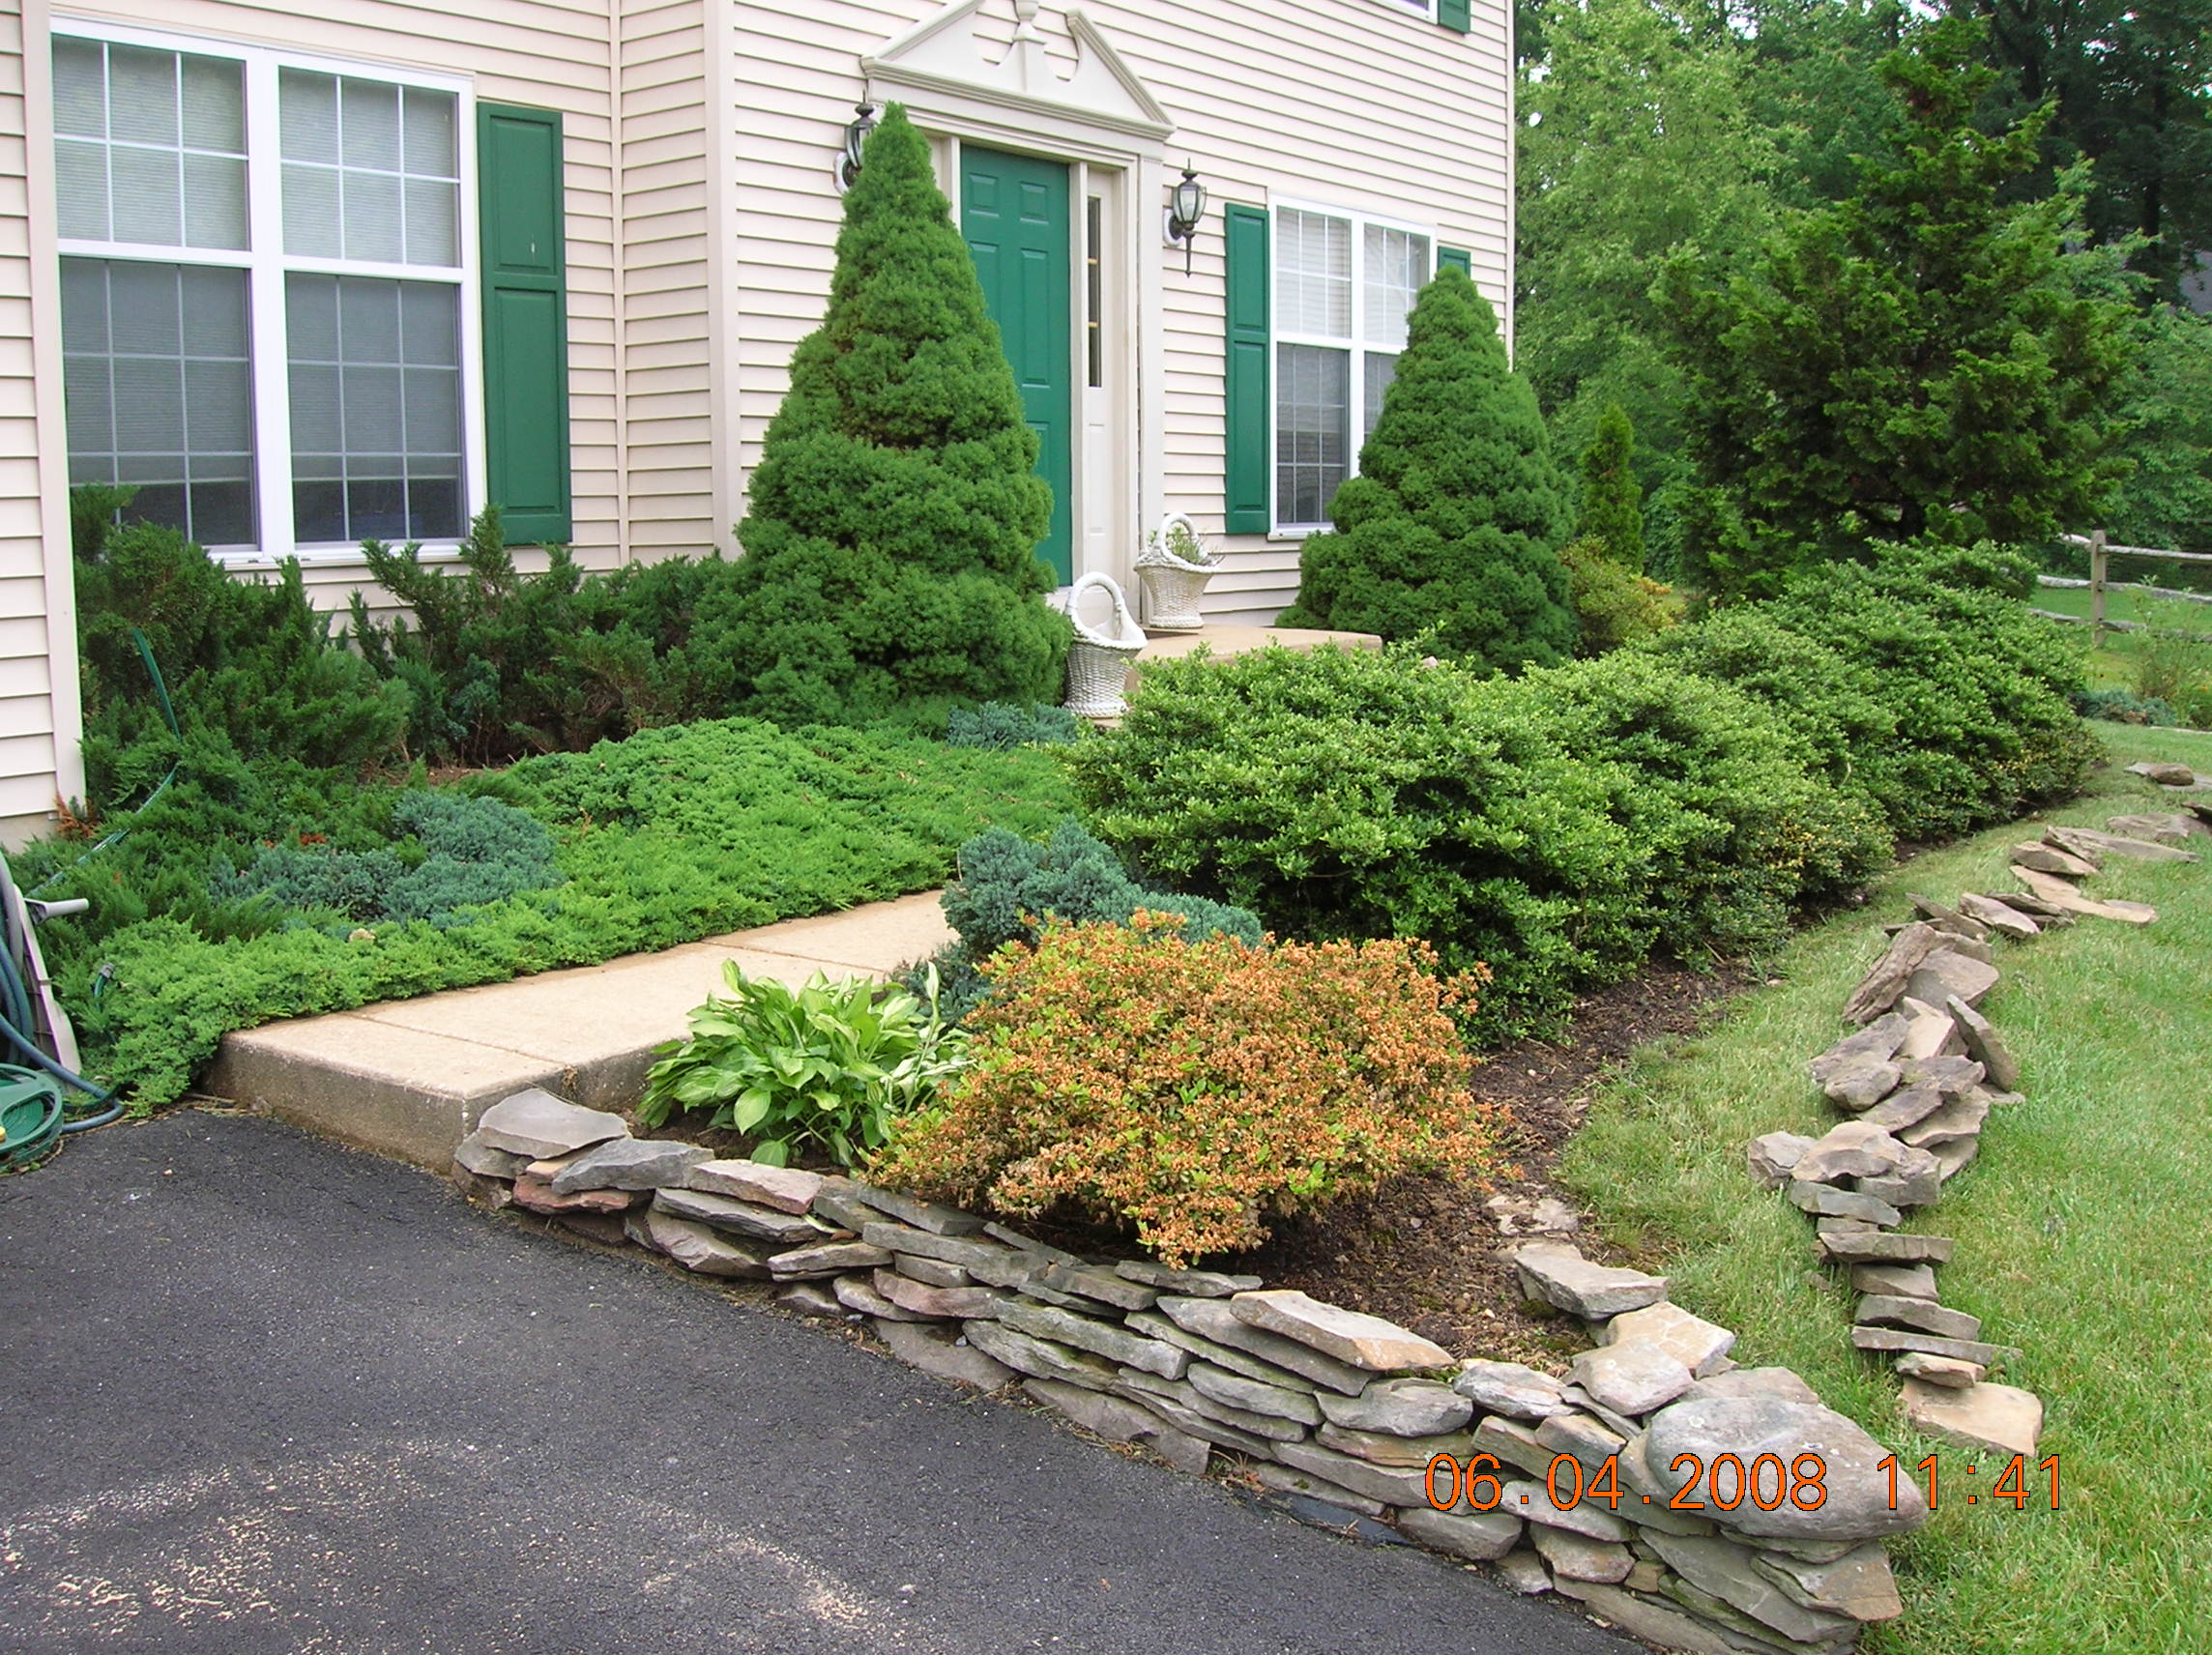 Outdoor & Gardening Photograph: Rock Edging Flower Bed Borders ...